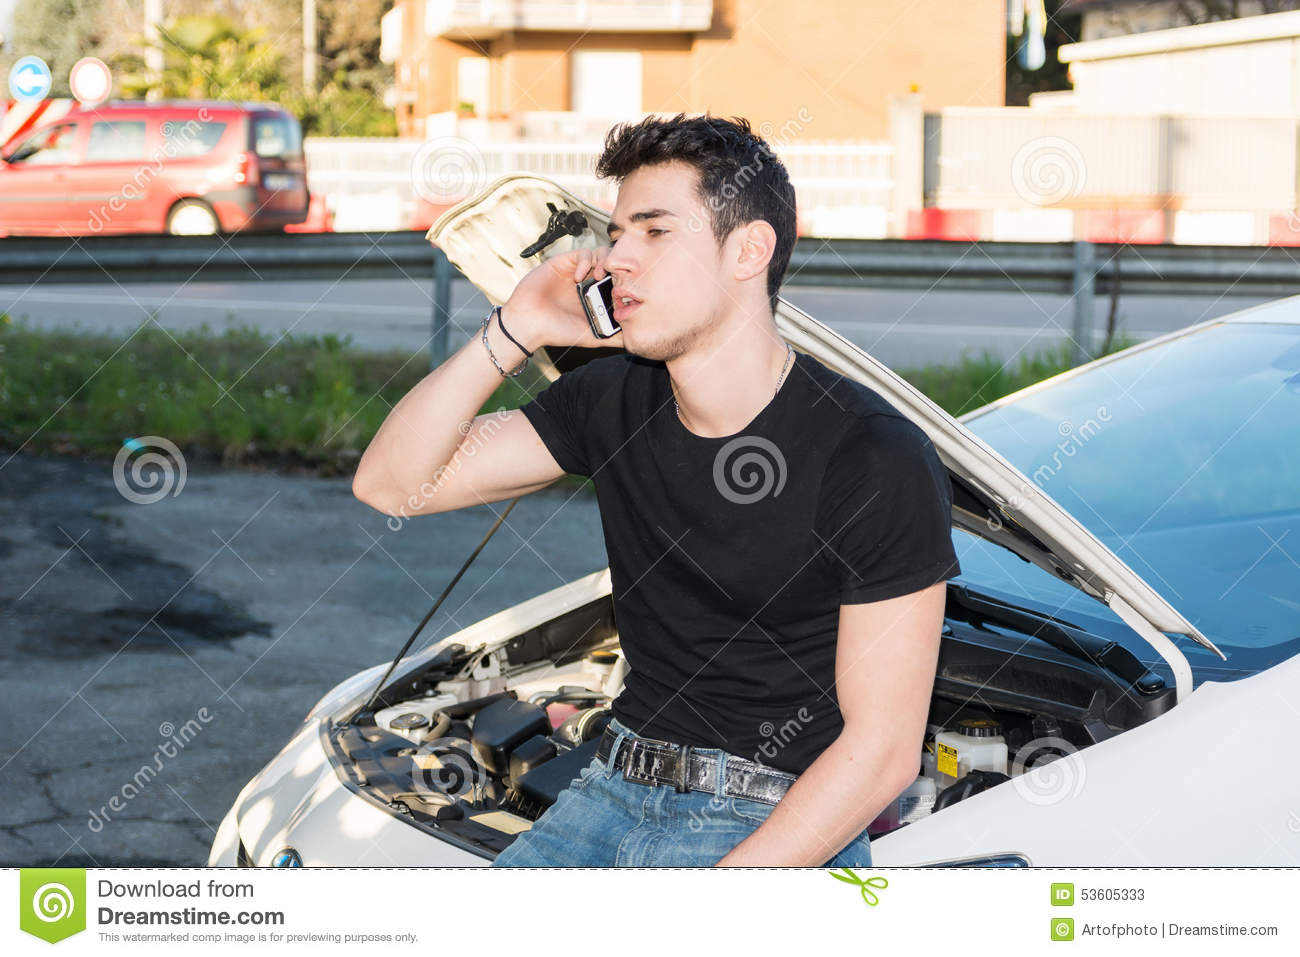 Man Trying To Repair A Car And Seeking Help Stock Image